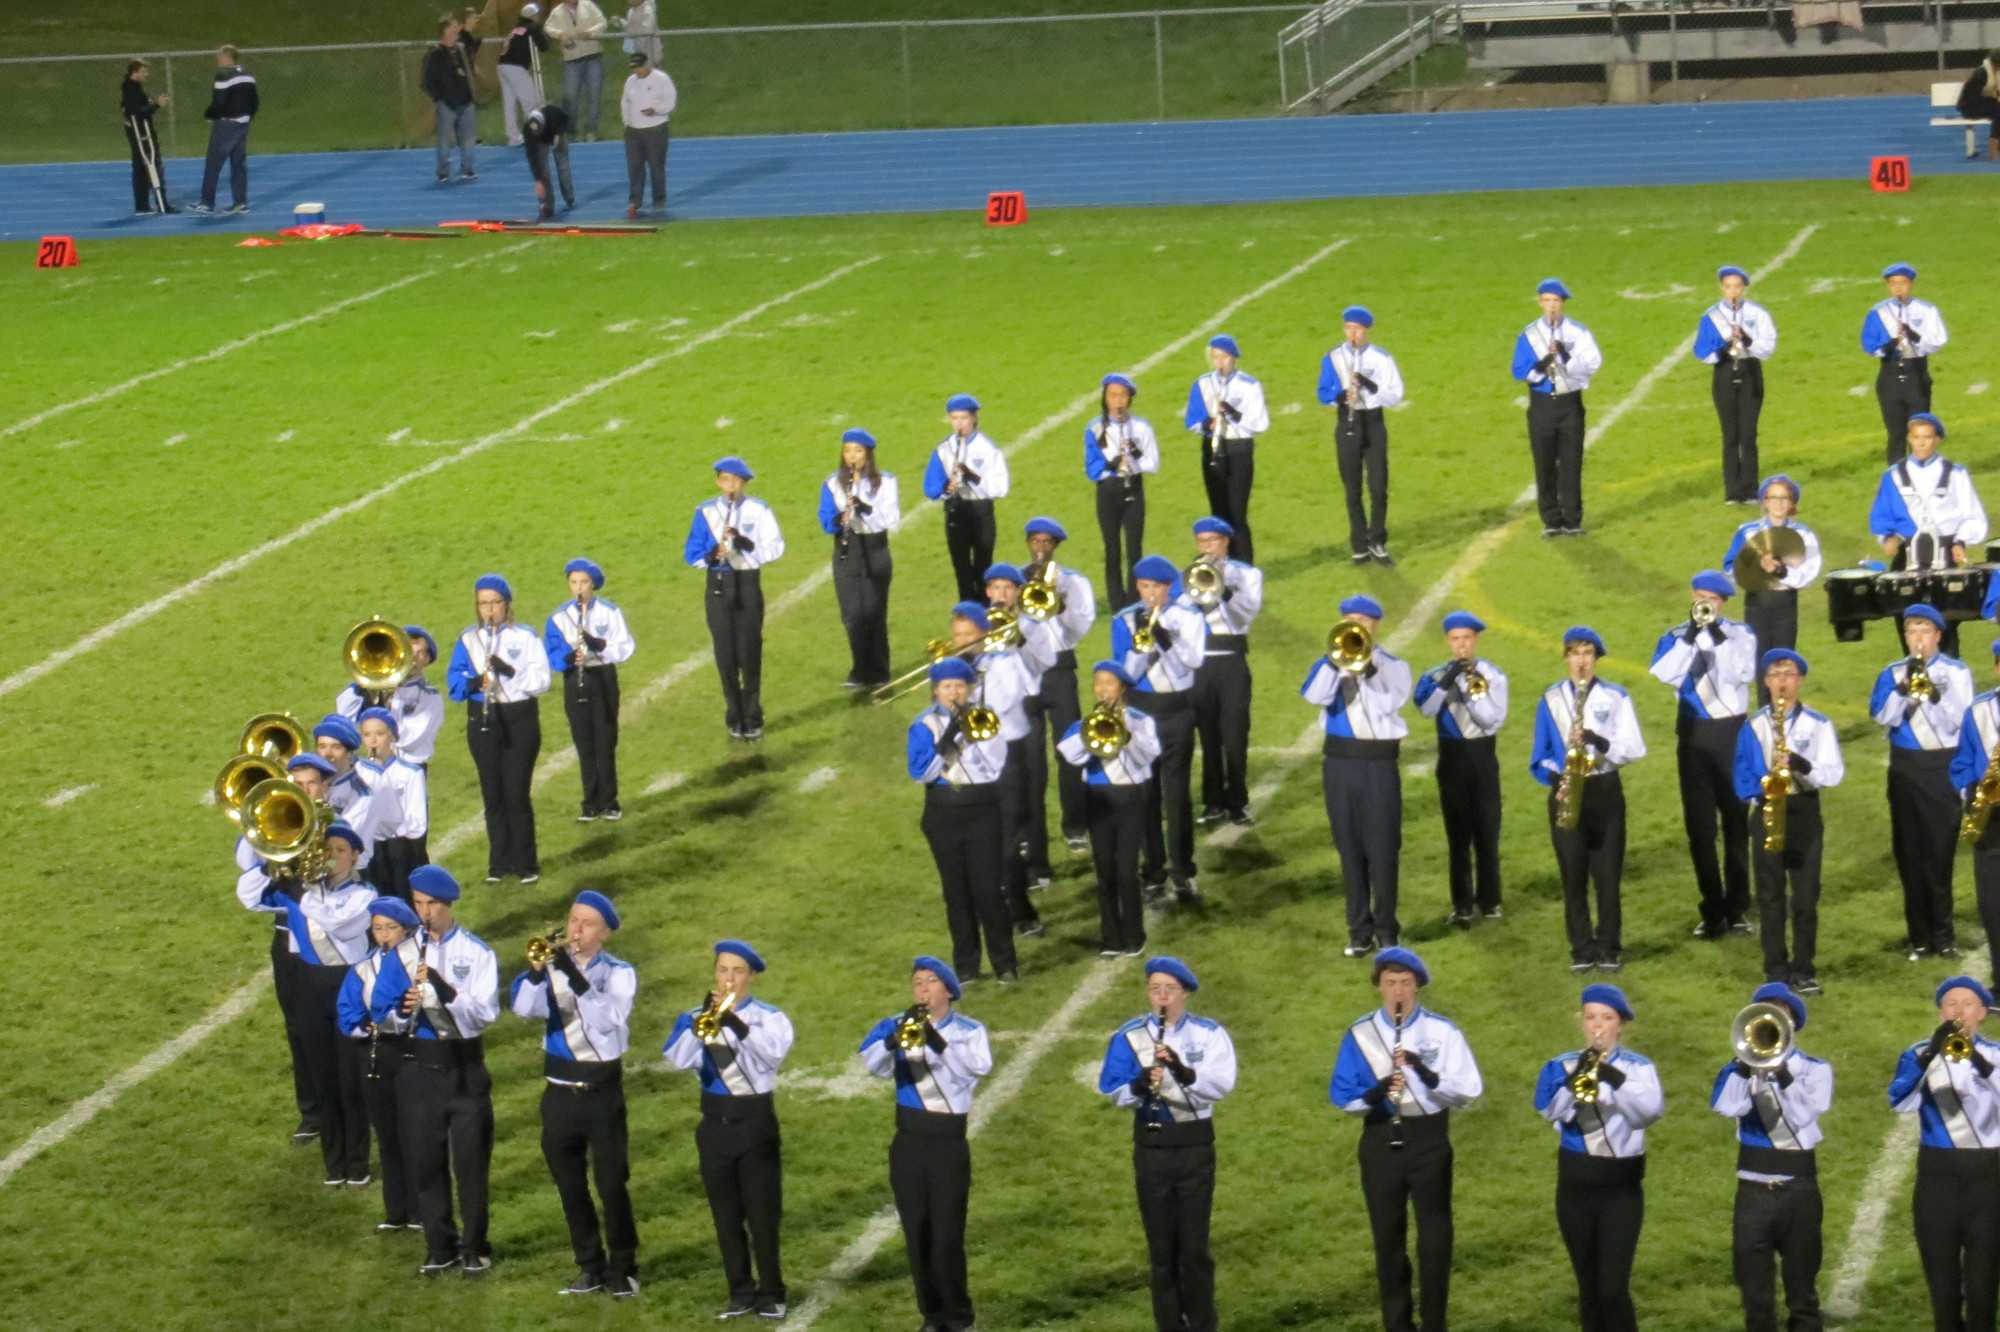 Varsity Band's halftime performance